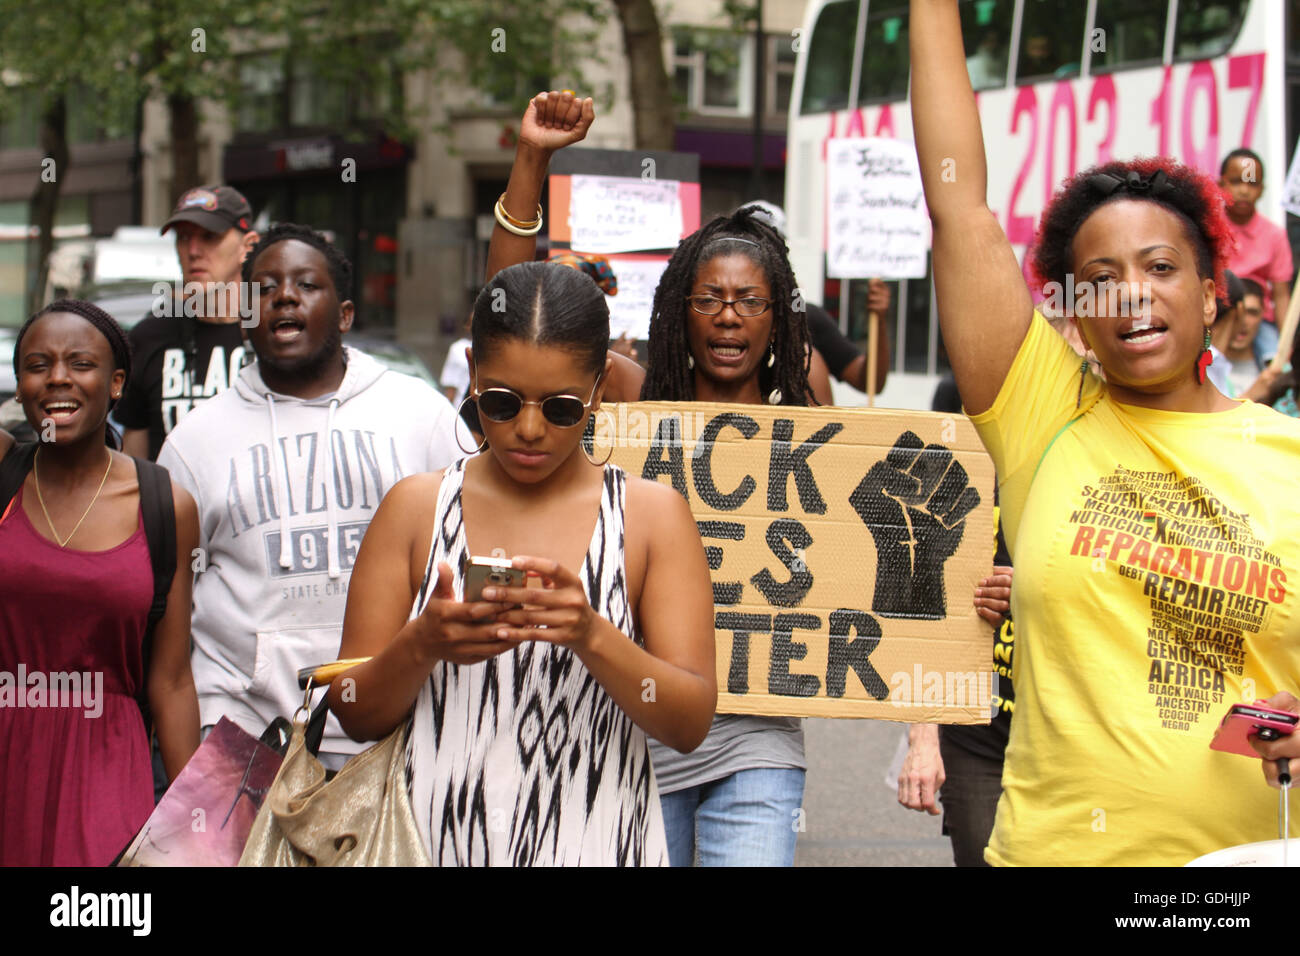 London, UK. 17th July, 2016.: Black Lives Matter protesters took to Oxford Street for a solidarity march for Mzee - Stock Image